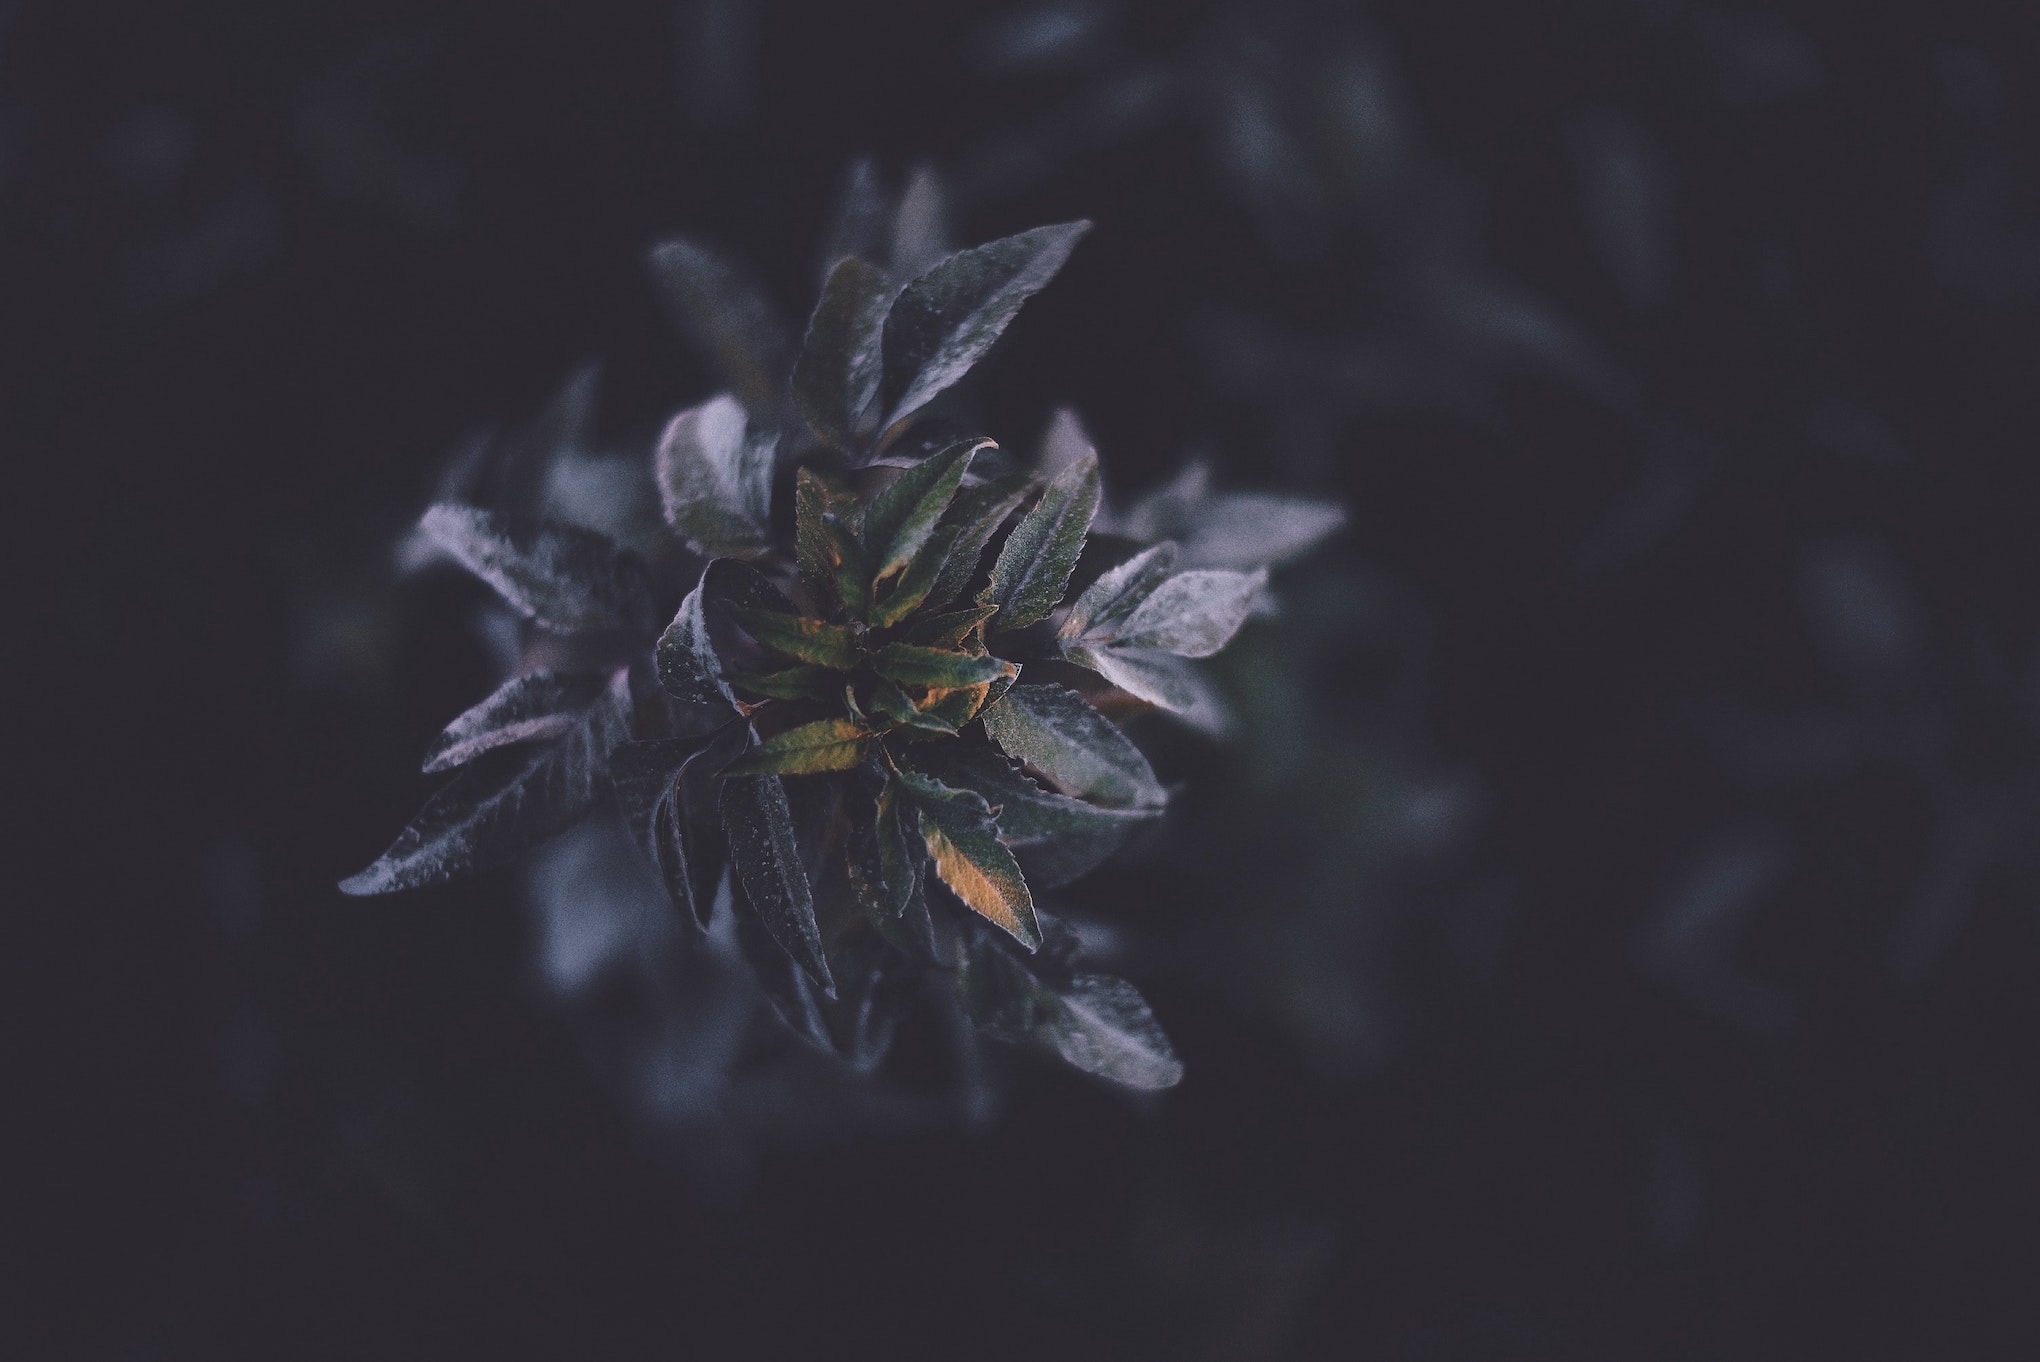 Plant in the Darkness